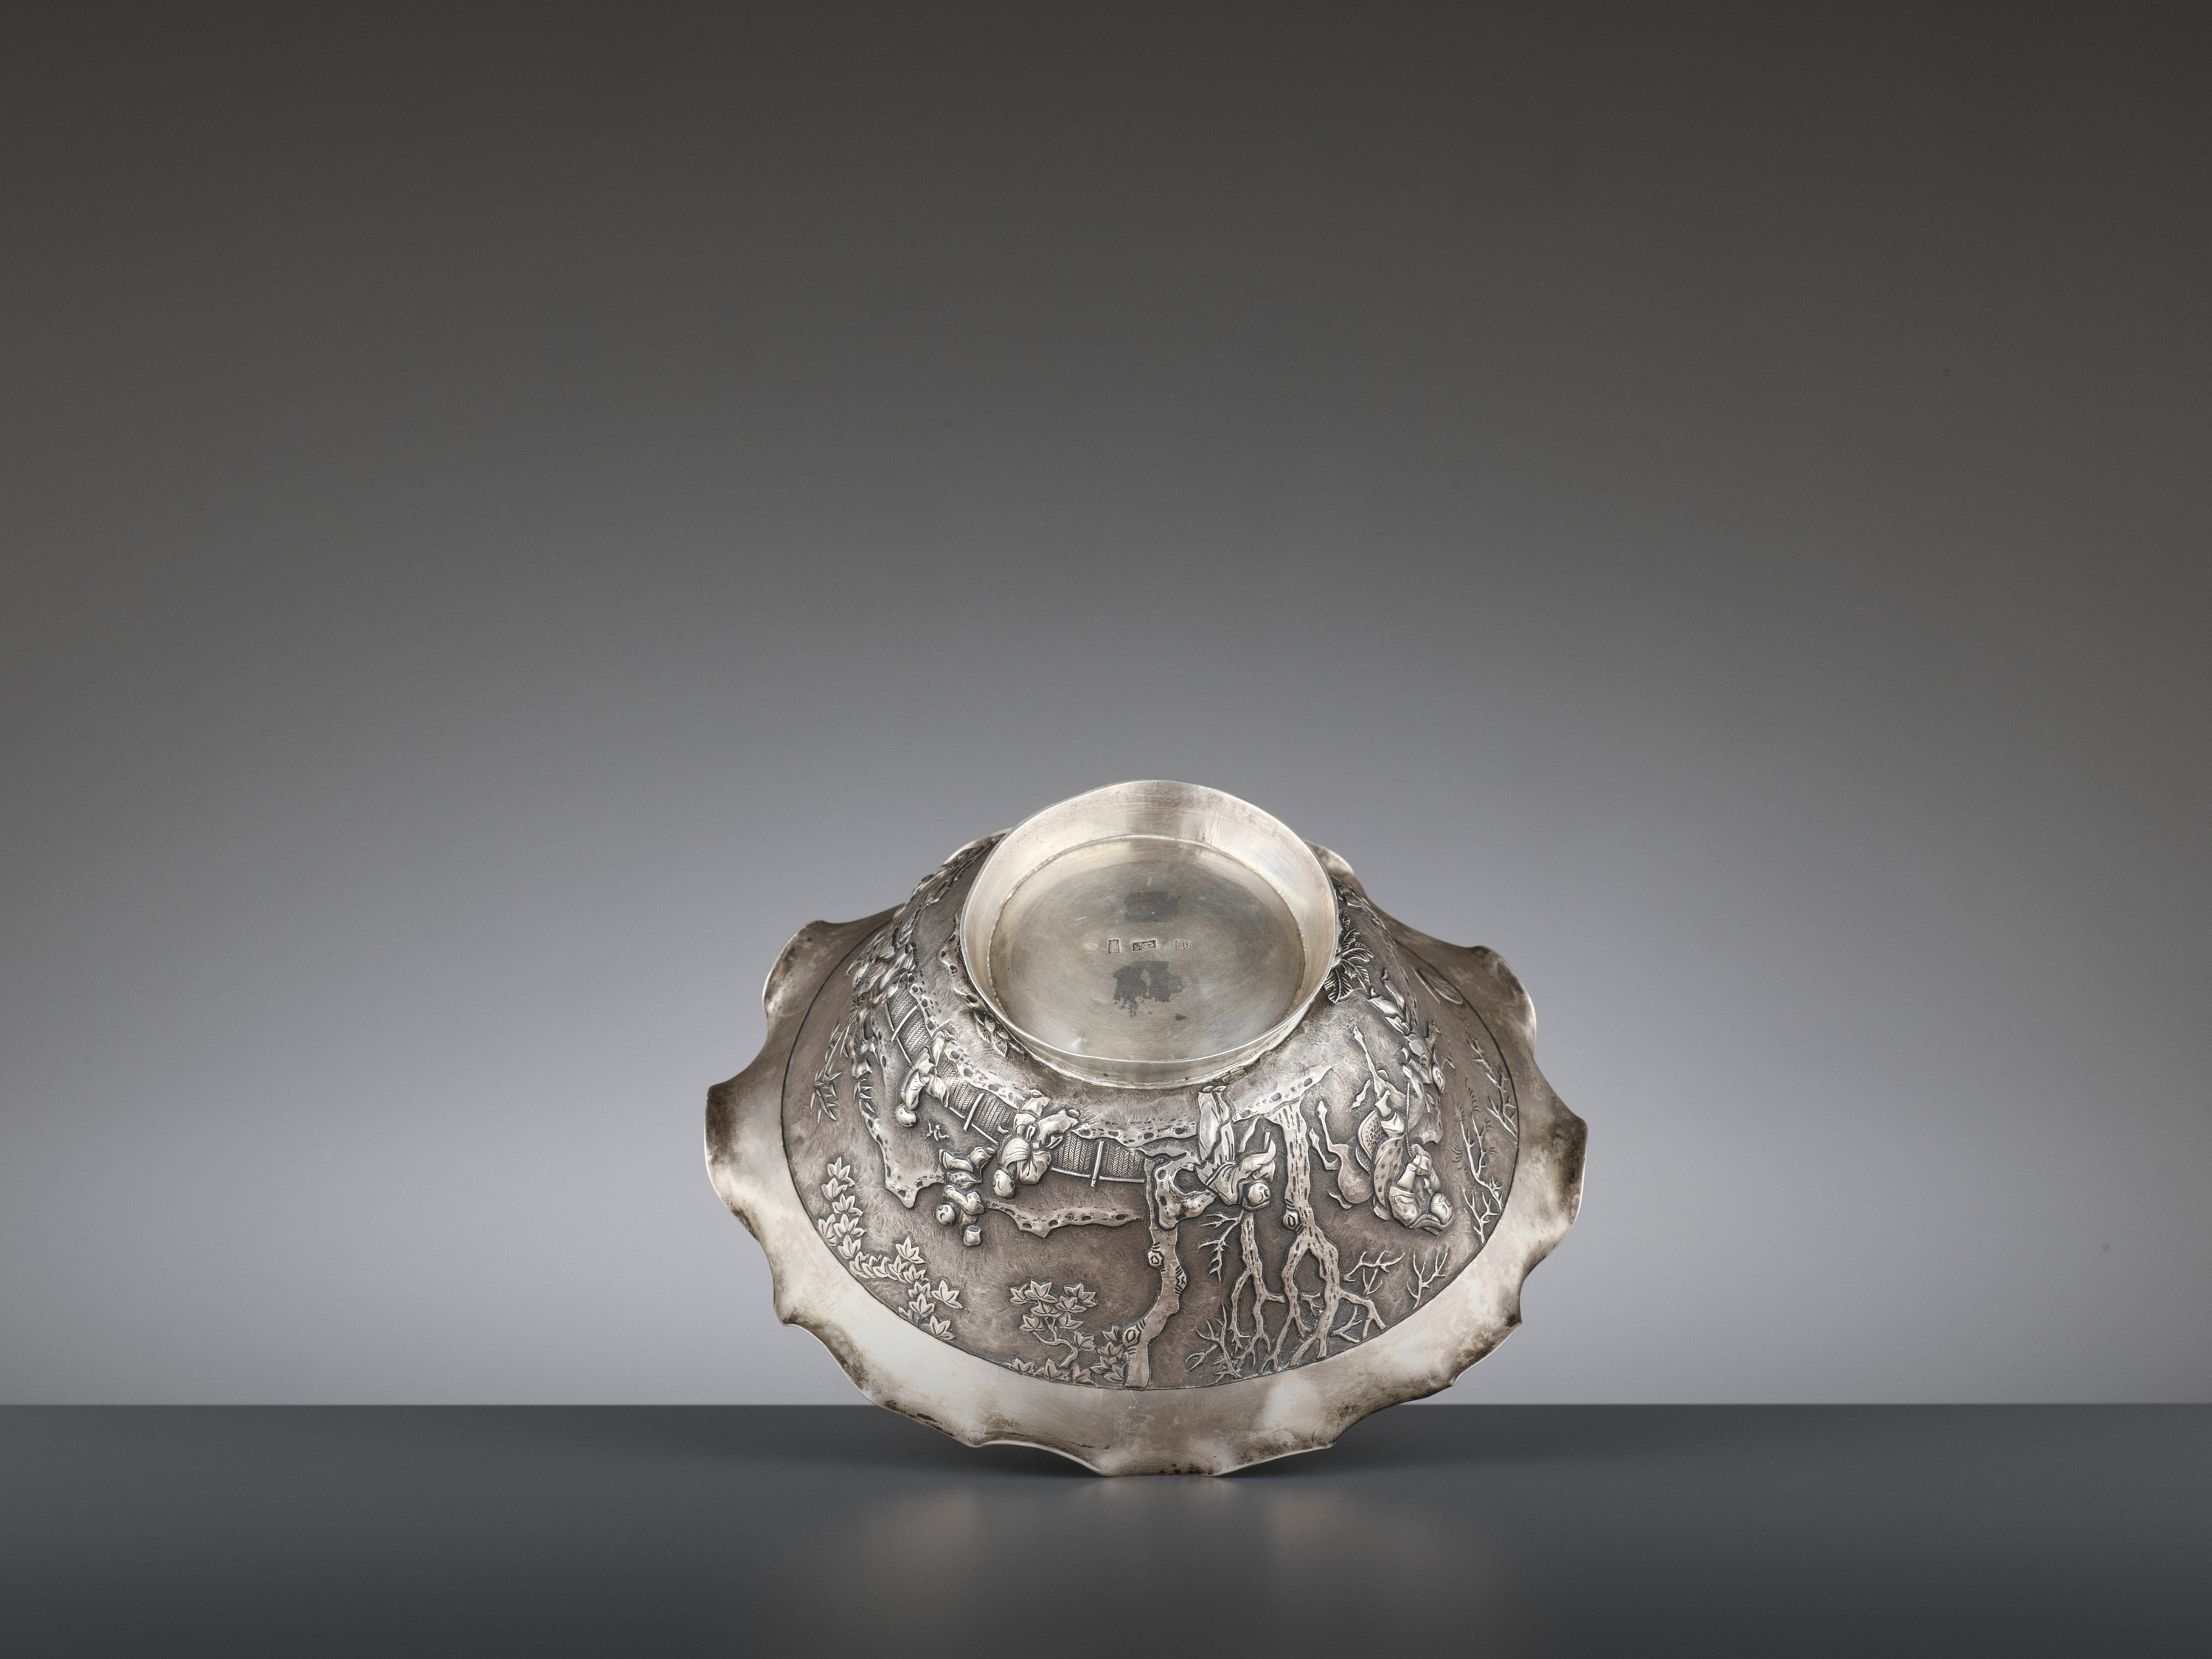 A SILVER REPOUSSE 'WEIQI PLAYERS' BOWL BY KWONG MAN SHING - Image 6 of 9